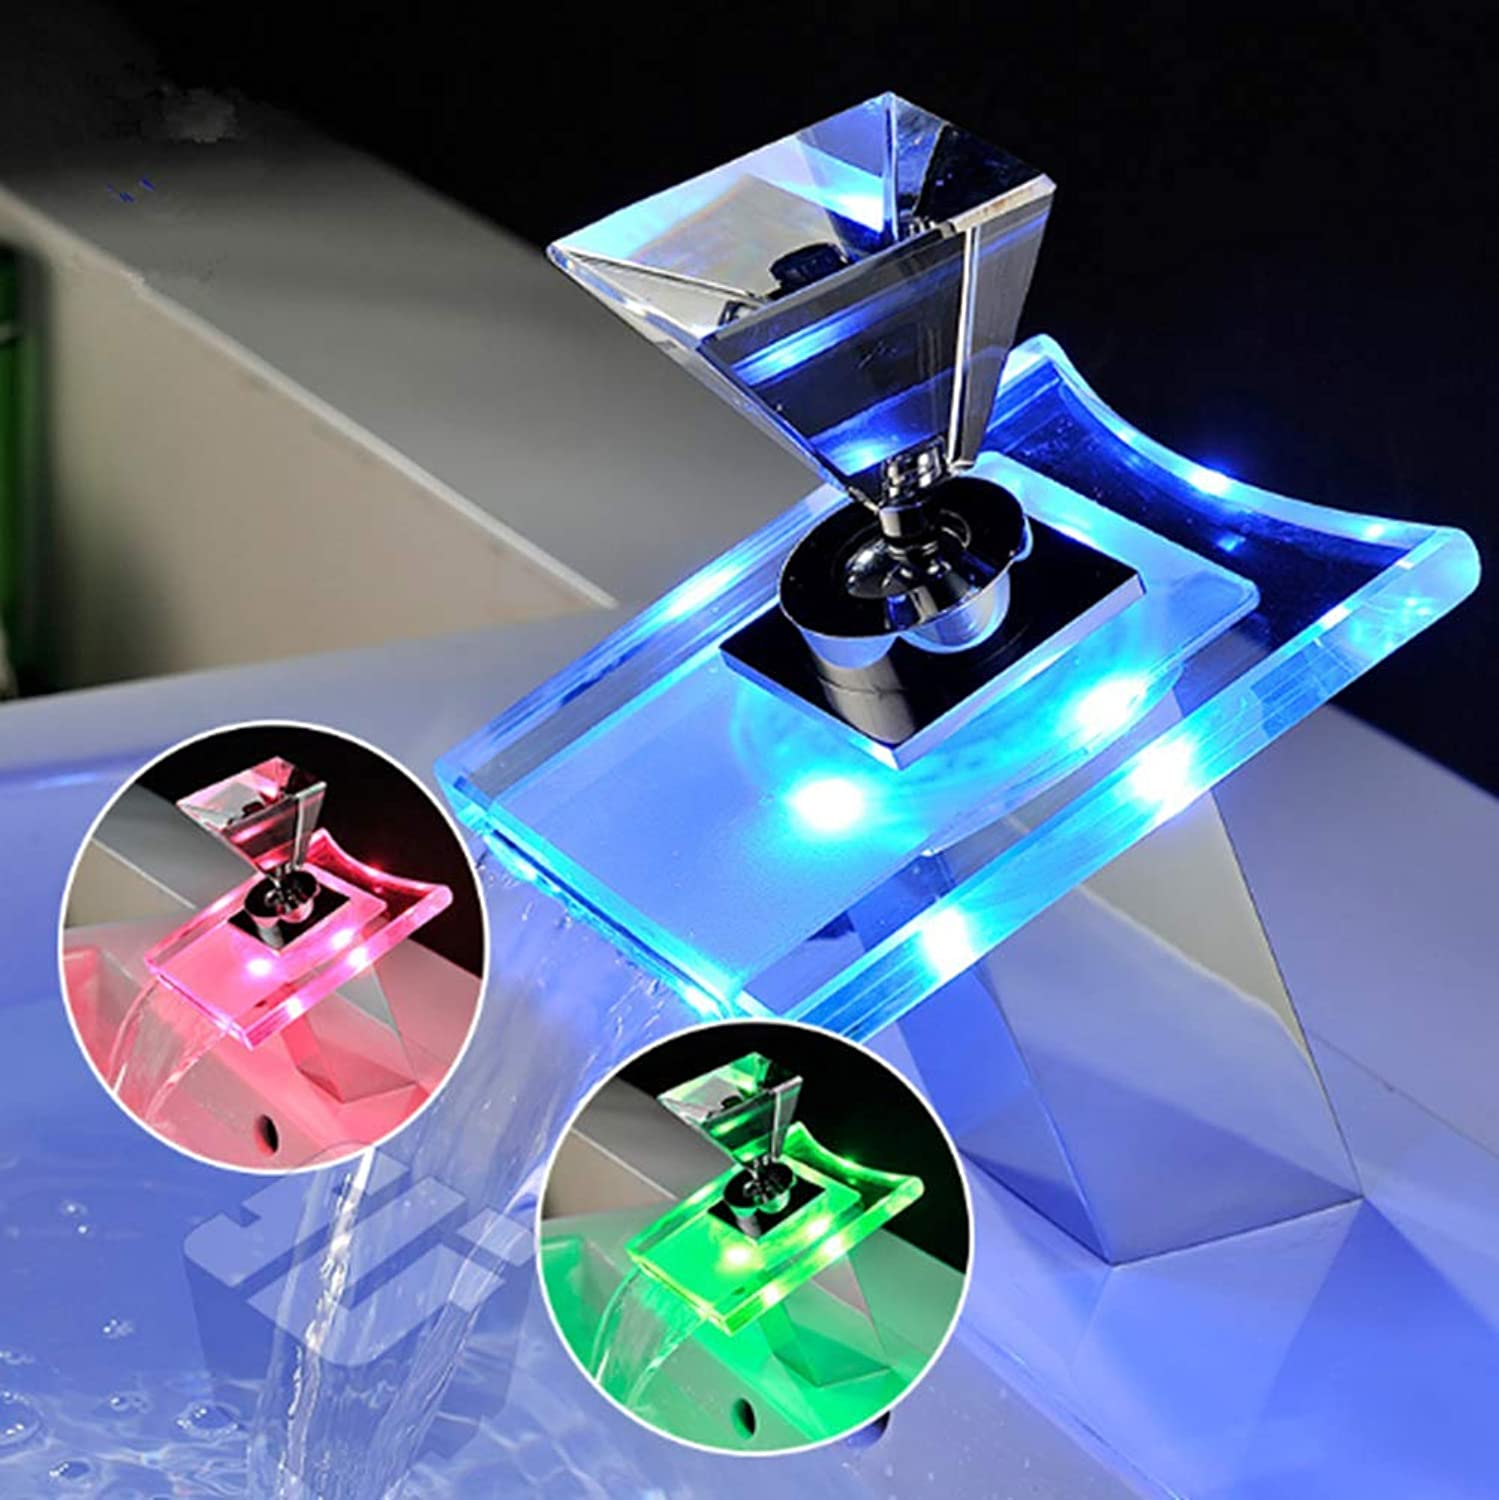 Waterfall Bathroom Sink Faucet Led Light Colour Changing One Hole Single Handle Glass Bathroom Basin Tap With Temperature Sensor Ceramic Valve